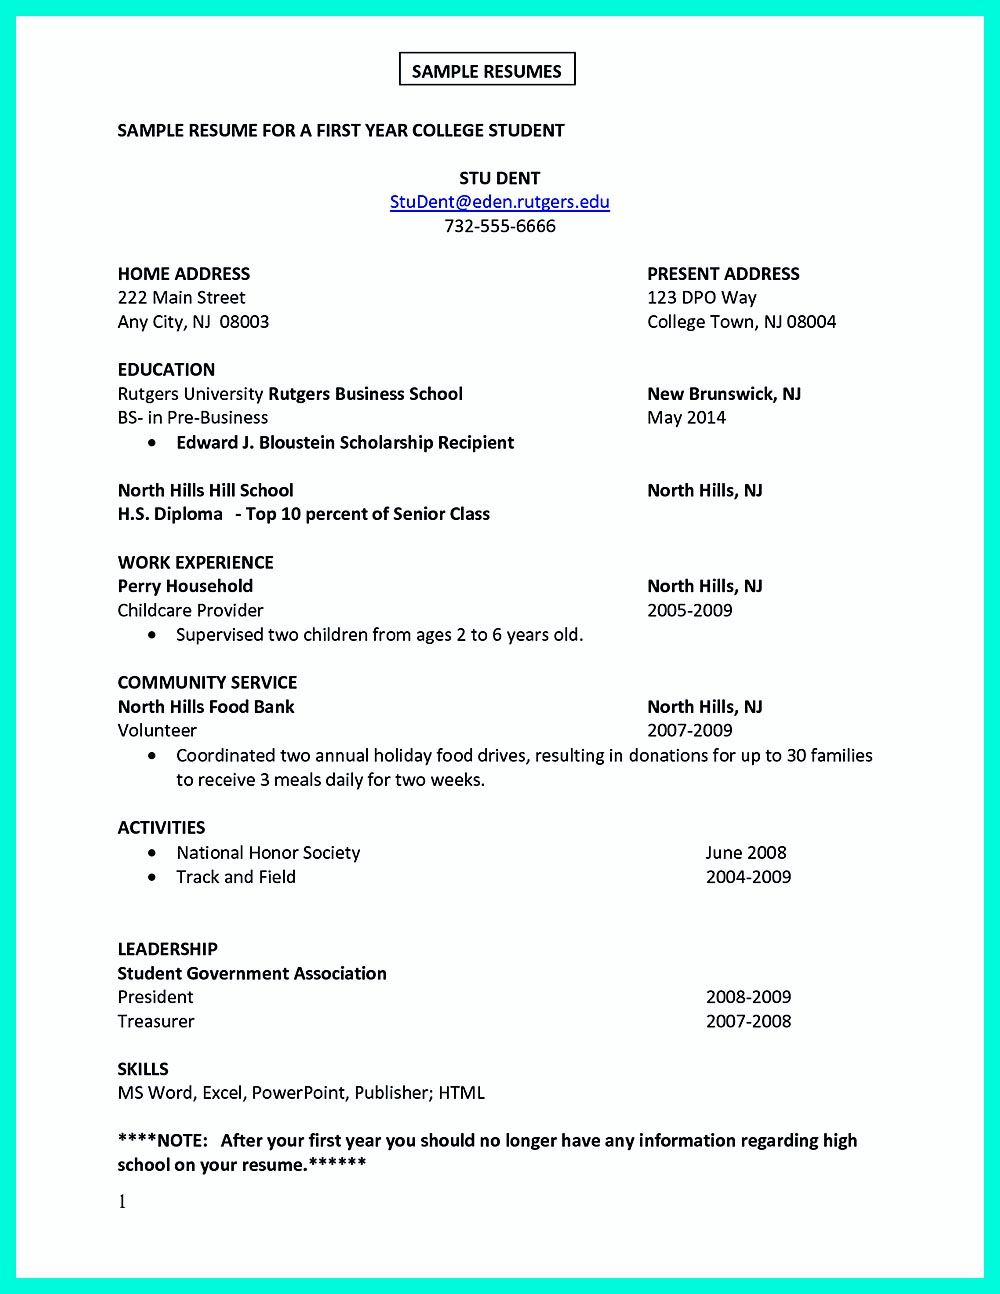 current college student resume is designed for fresh graduate student who want to get a job soon